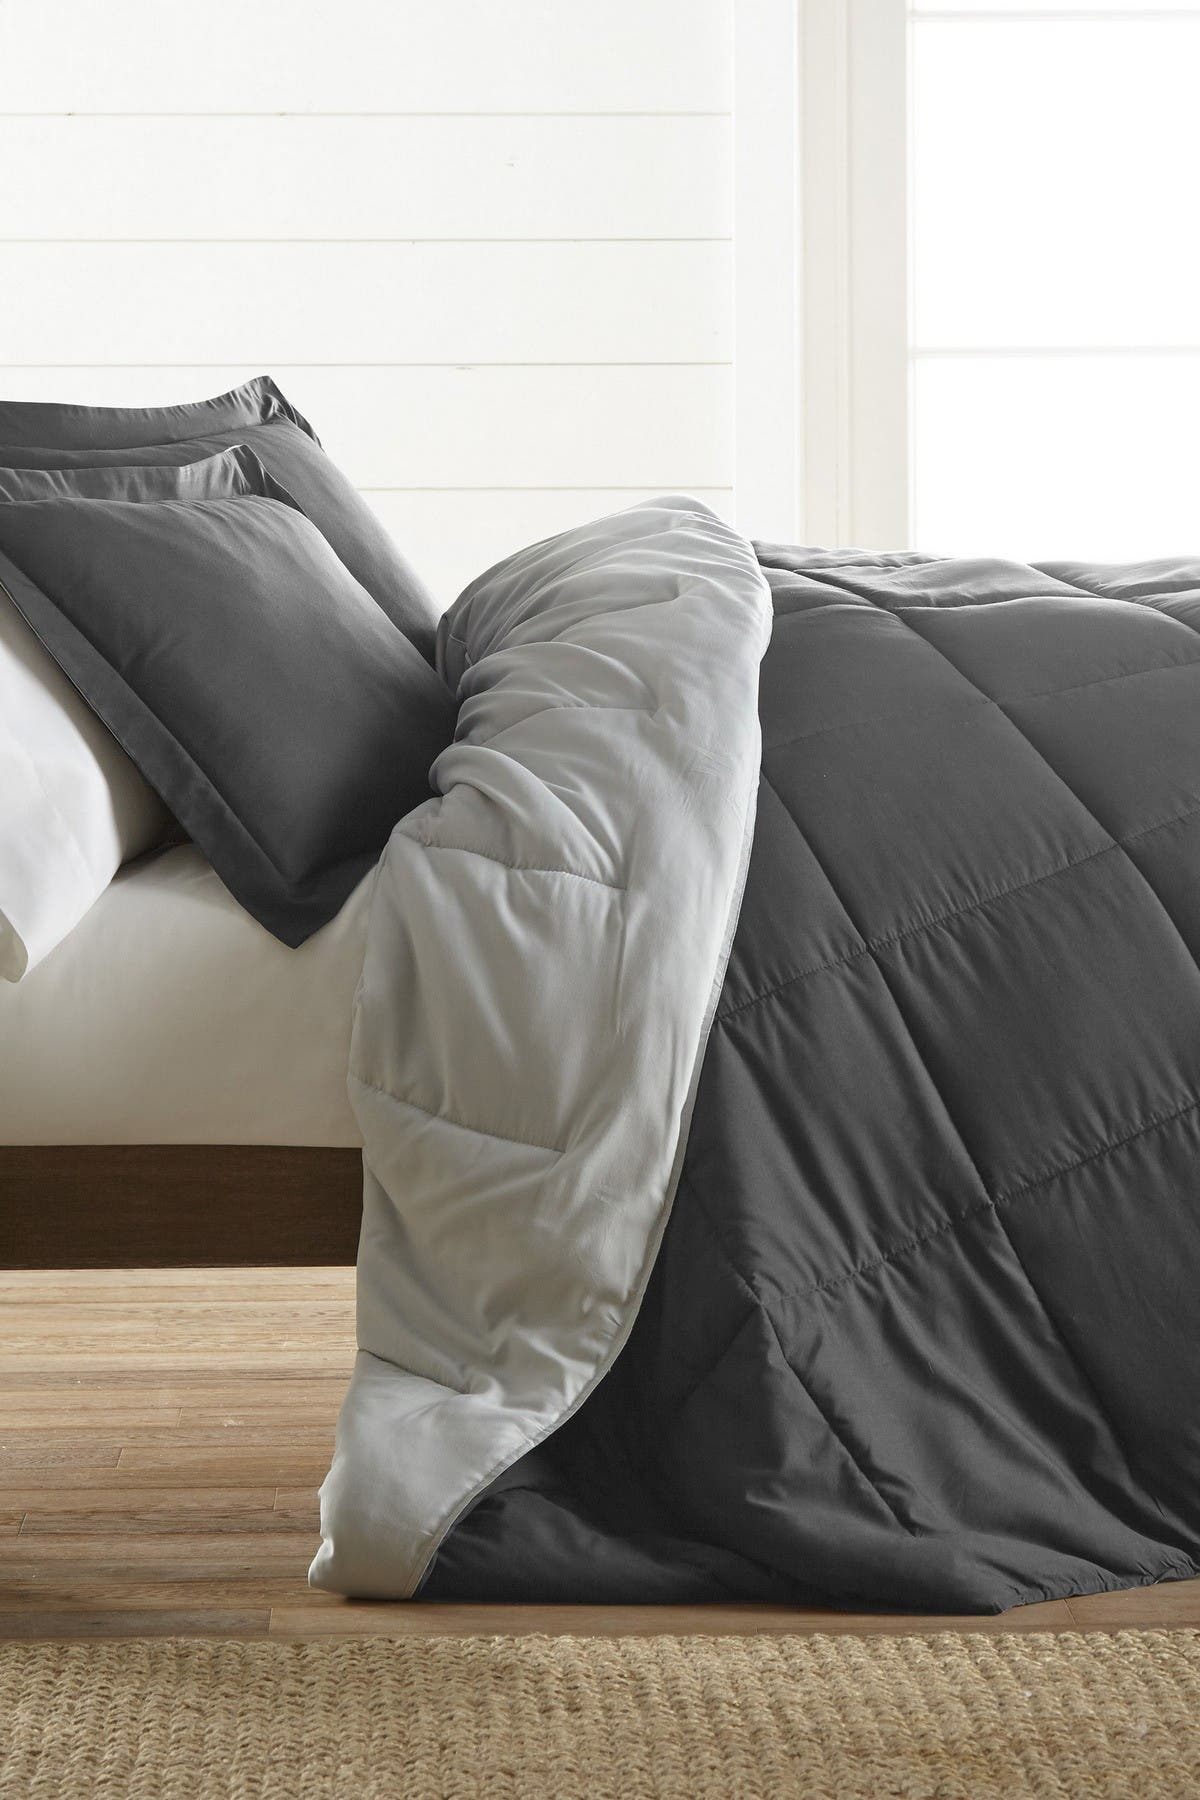 Image of IENJOY HOME Treat Yourself To The Ultimate Down Alternative Reversible 3-Piece Comforter Set - Gray - Queen